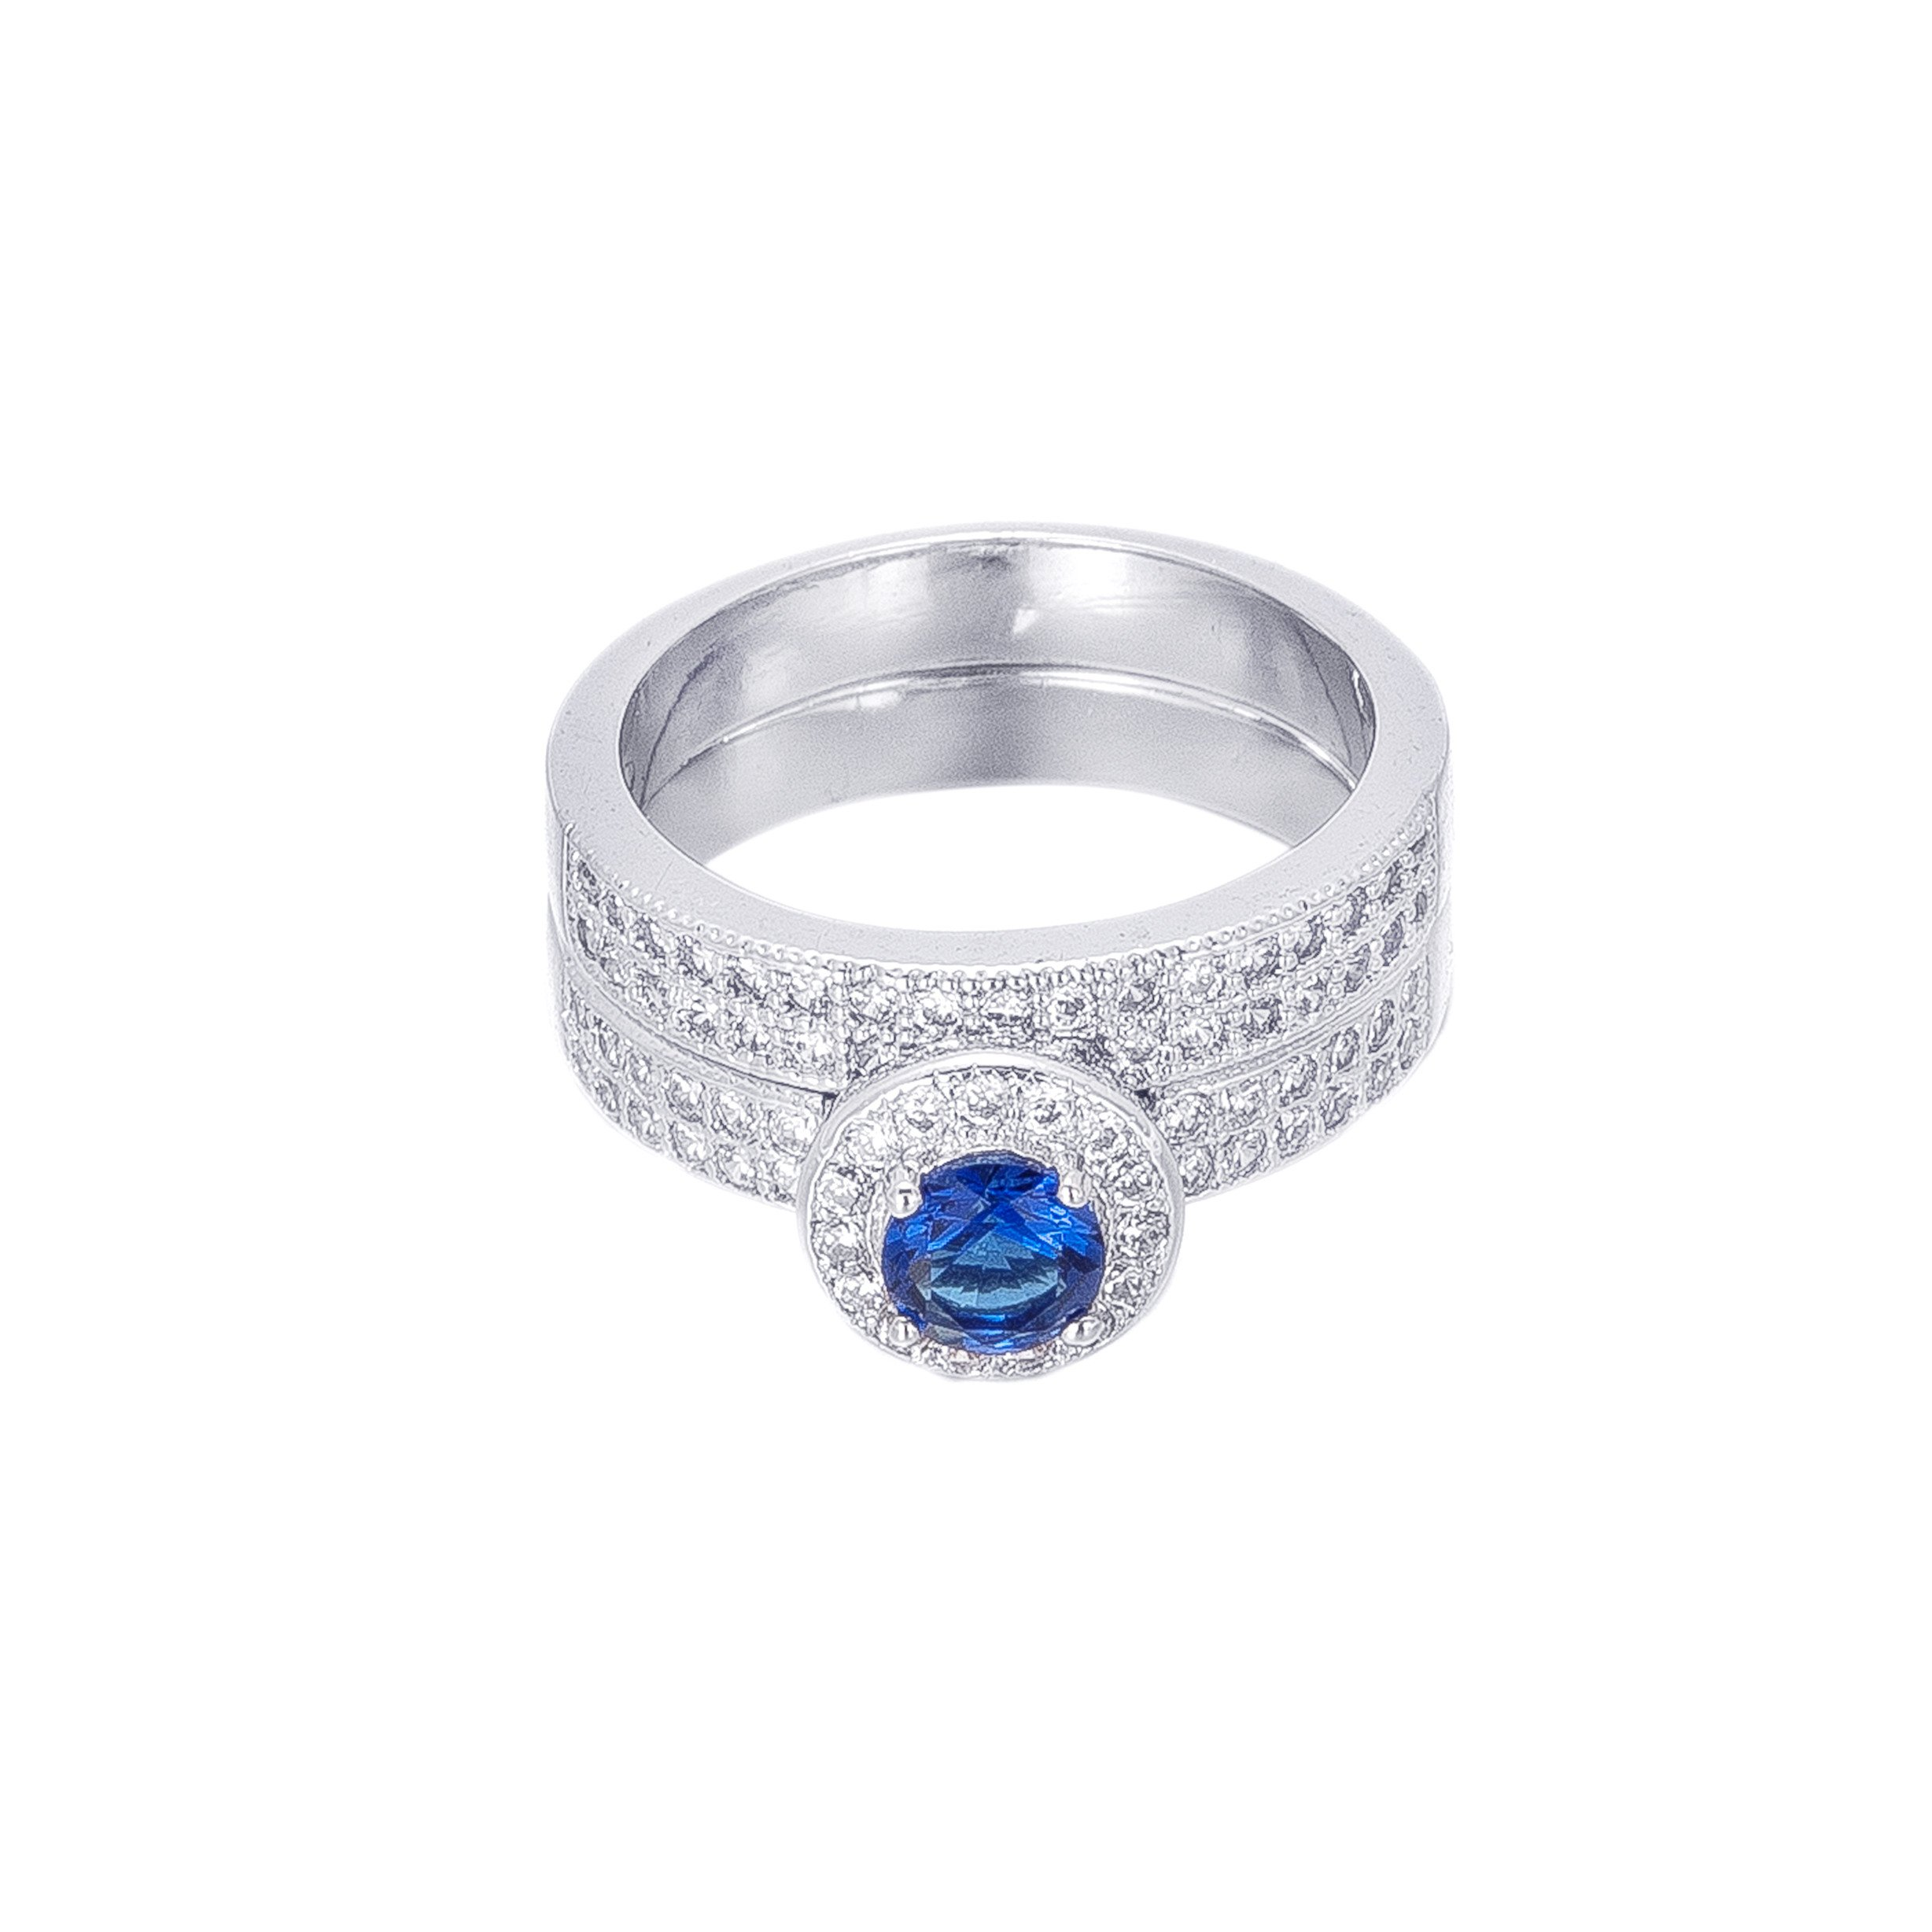 BLOOMCHARM ''Double The Love'' Gorgeous Stackable Rings,Double Design with Clear Cubic Zirconia Crystals ,iDeal Birthday Gifts for Girls Women Friends (Blue, 7)